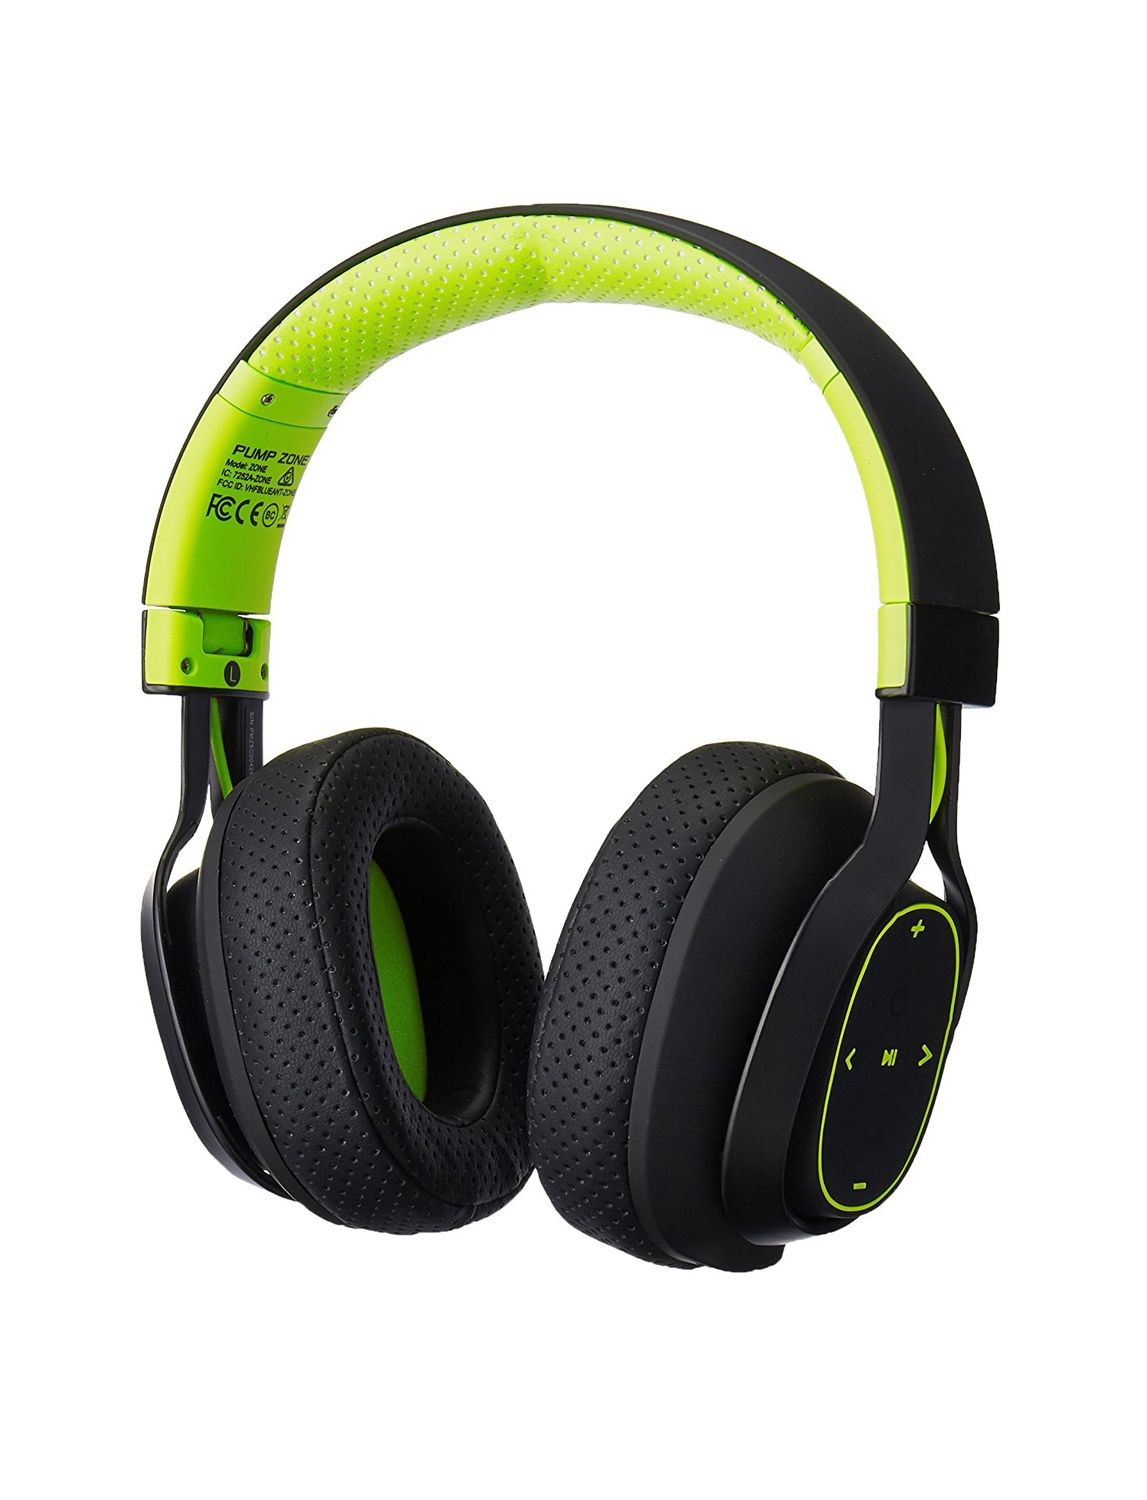 Blueant Pump Zone Over Ear Hd Wireless Headphones 30 Hrs Battery Sony High Resolution Mdr 100aap Red Mega Bass And Enhanced Sound Purity Green